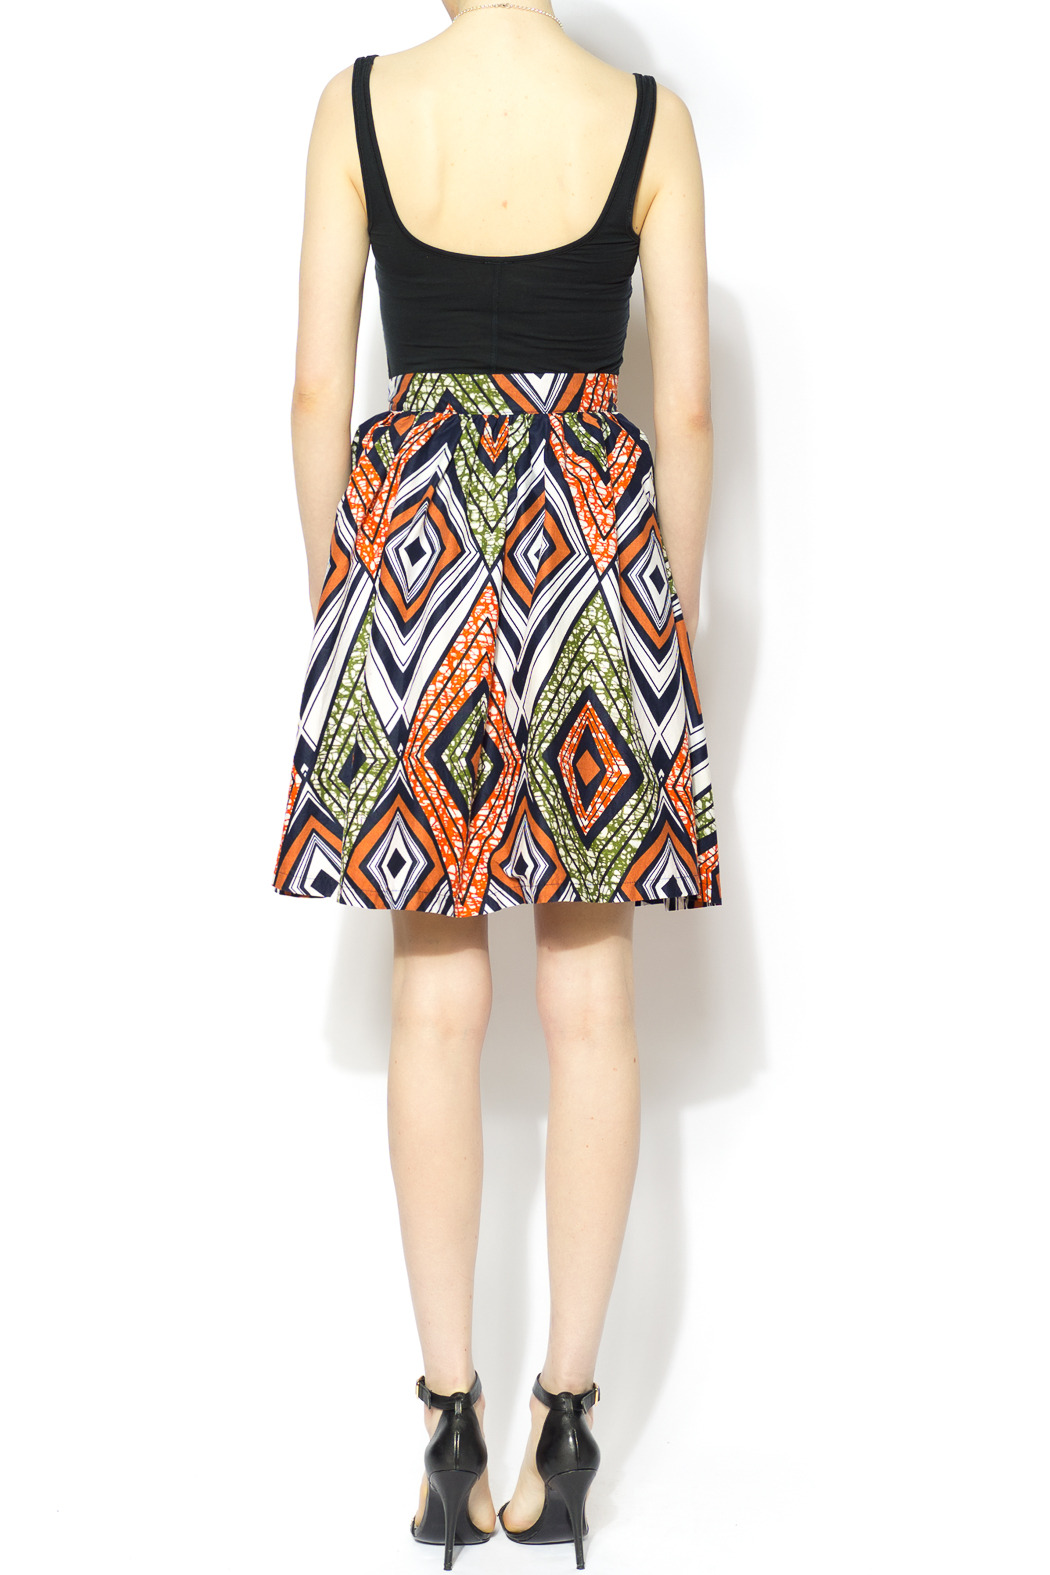 Royal Jelly Harlem Diamond Serafina Skirt - Side Cropped Image